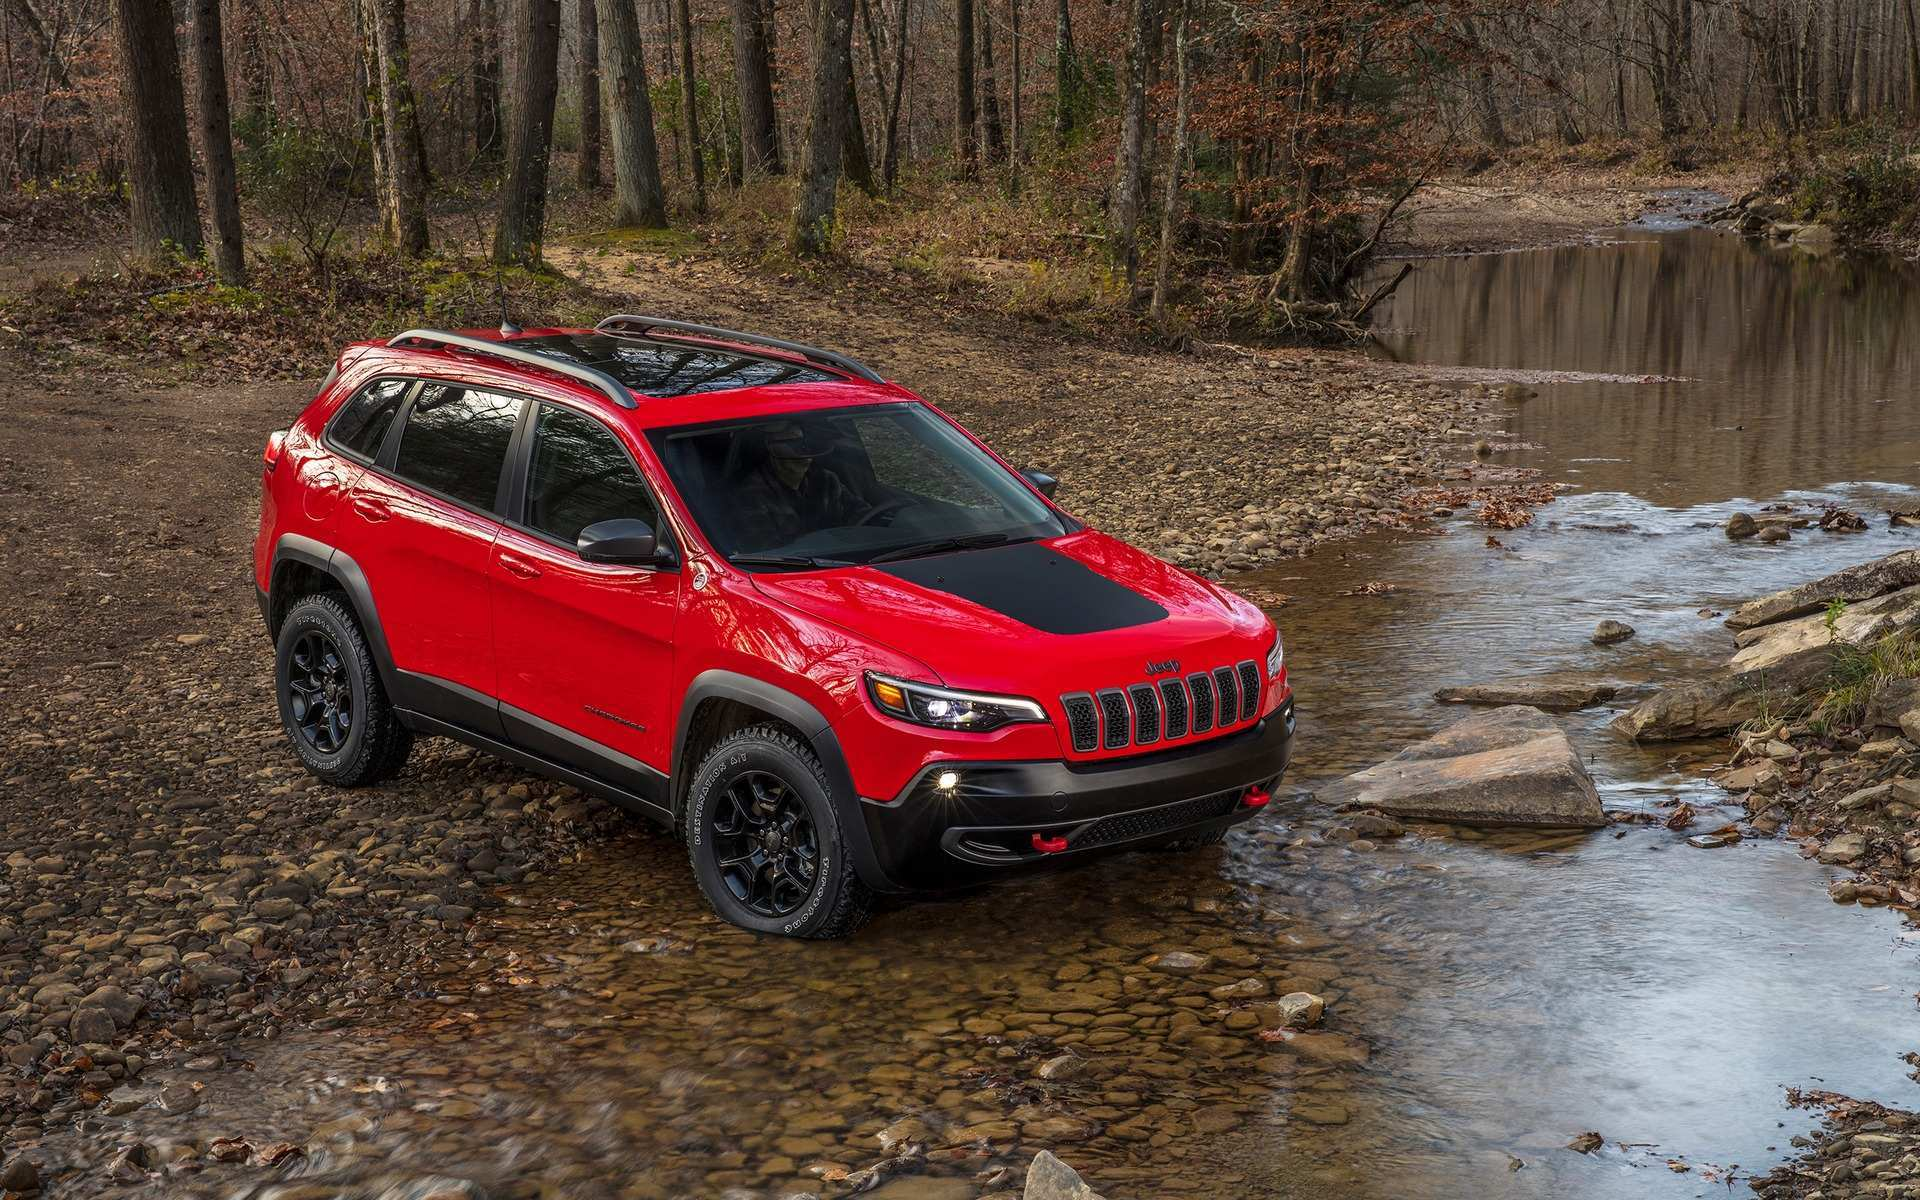 63 New 2019 Jeep Cherokee Trailhawk Release Date